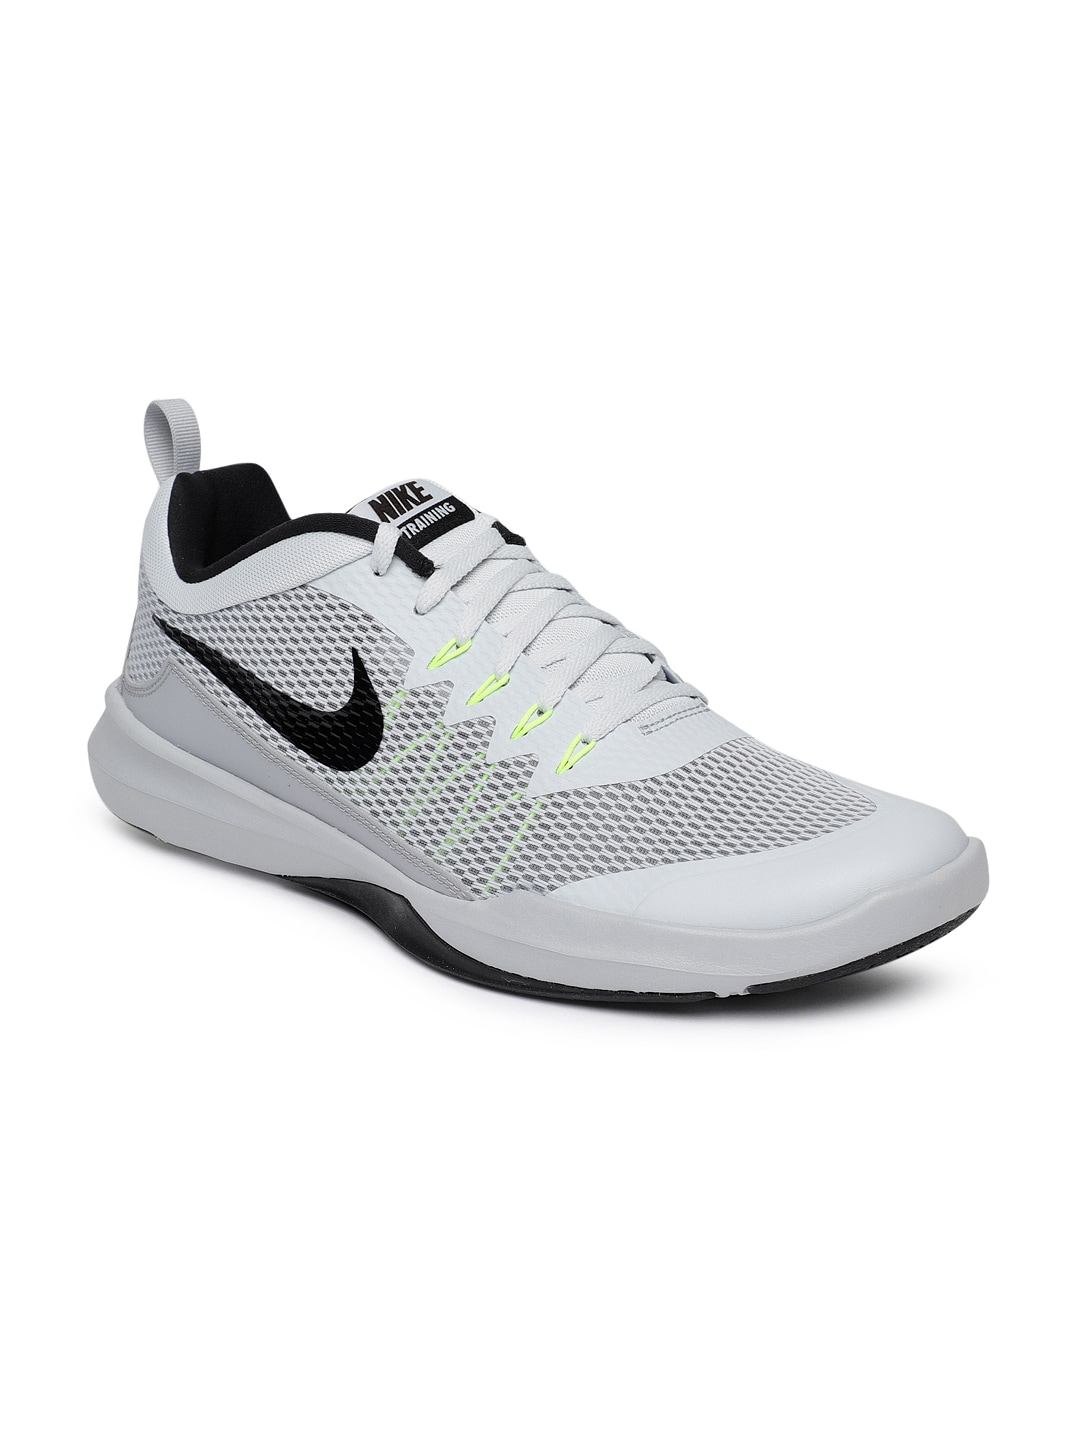 timeless design 25bf4 3dd52 Nike Shoes - Buy Nike Shoes for Men, Women   Kids Online   Myntra